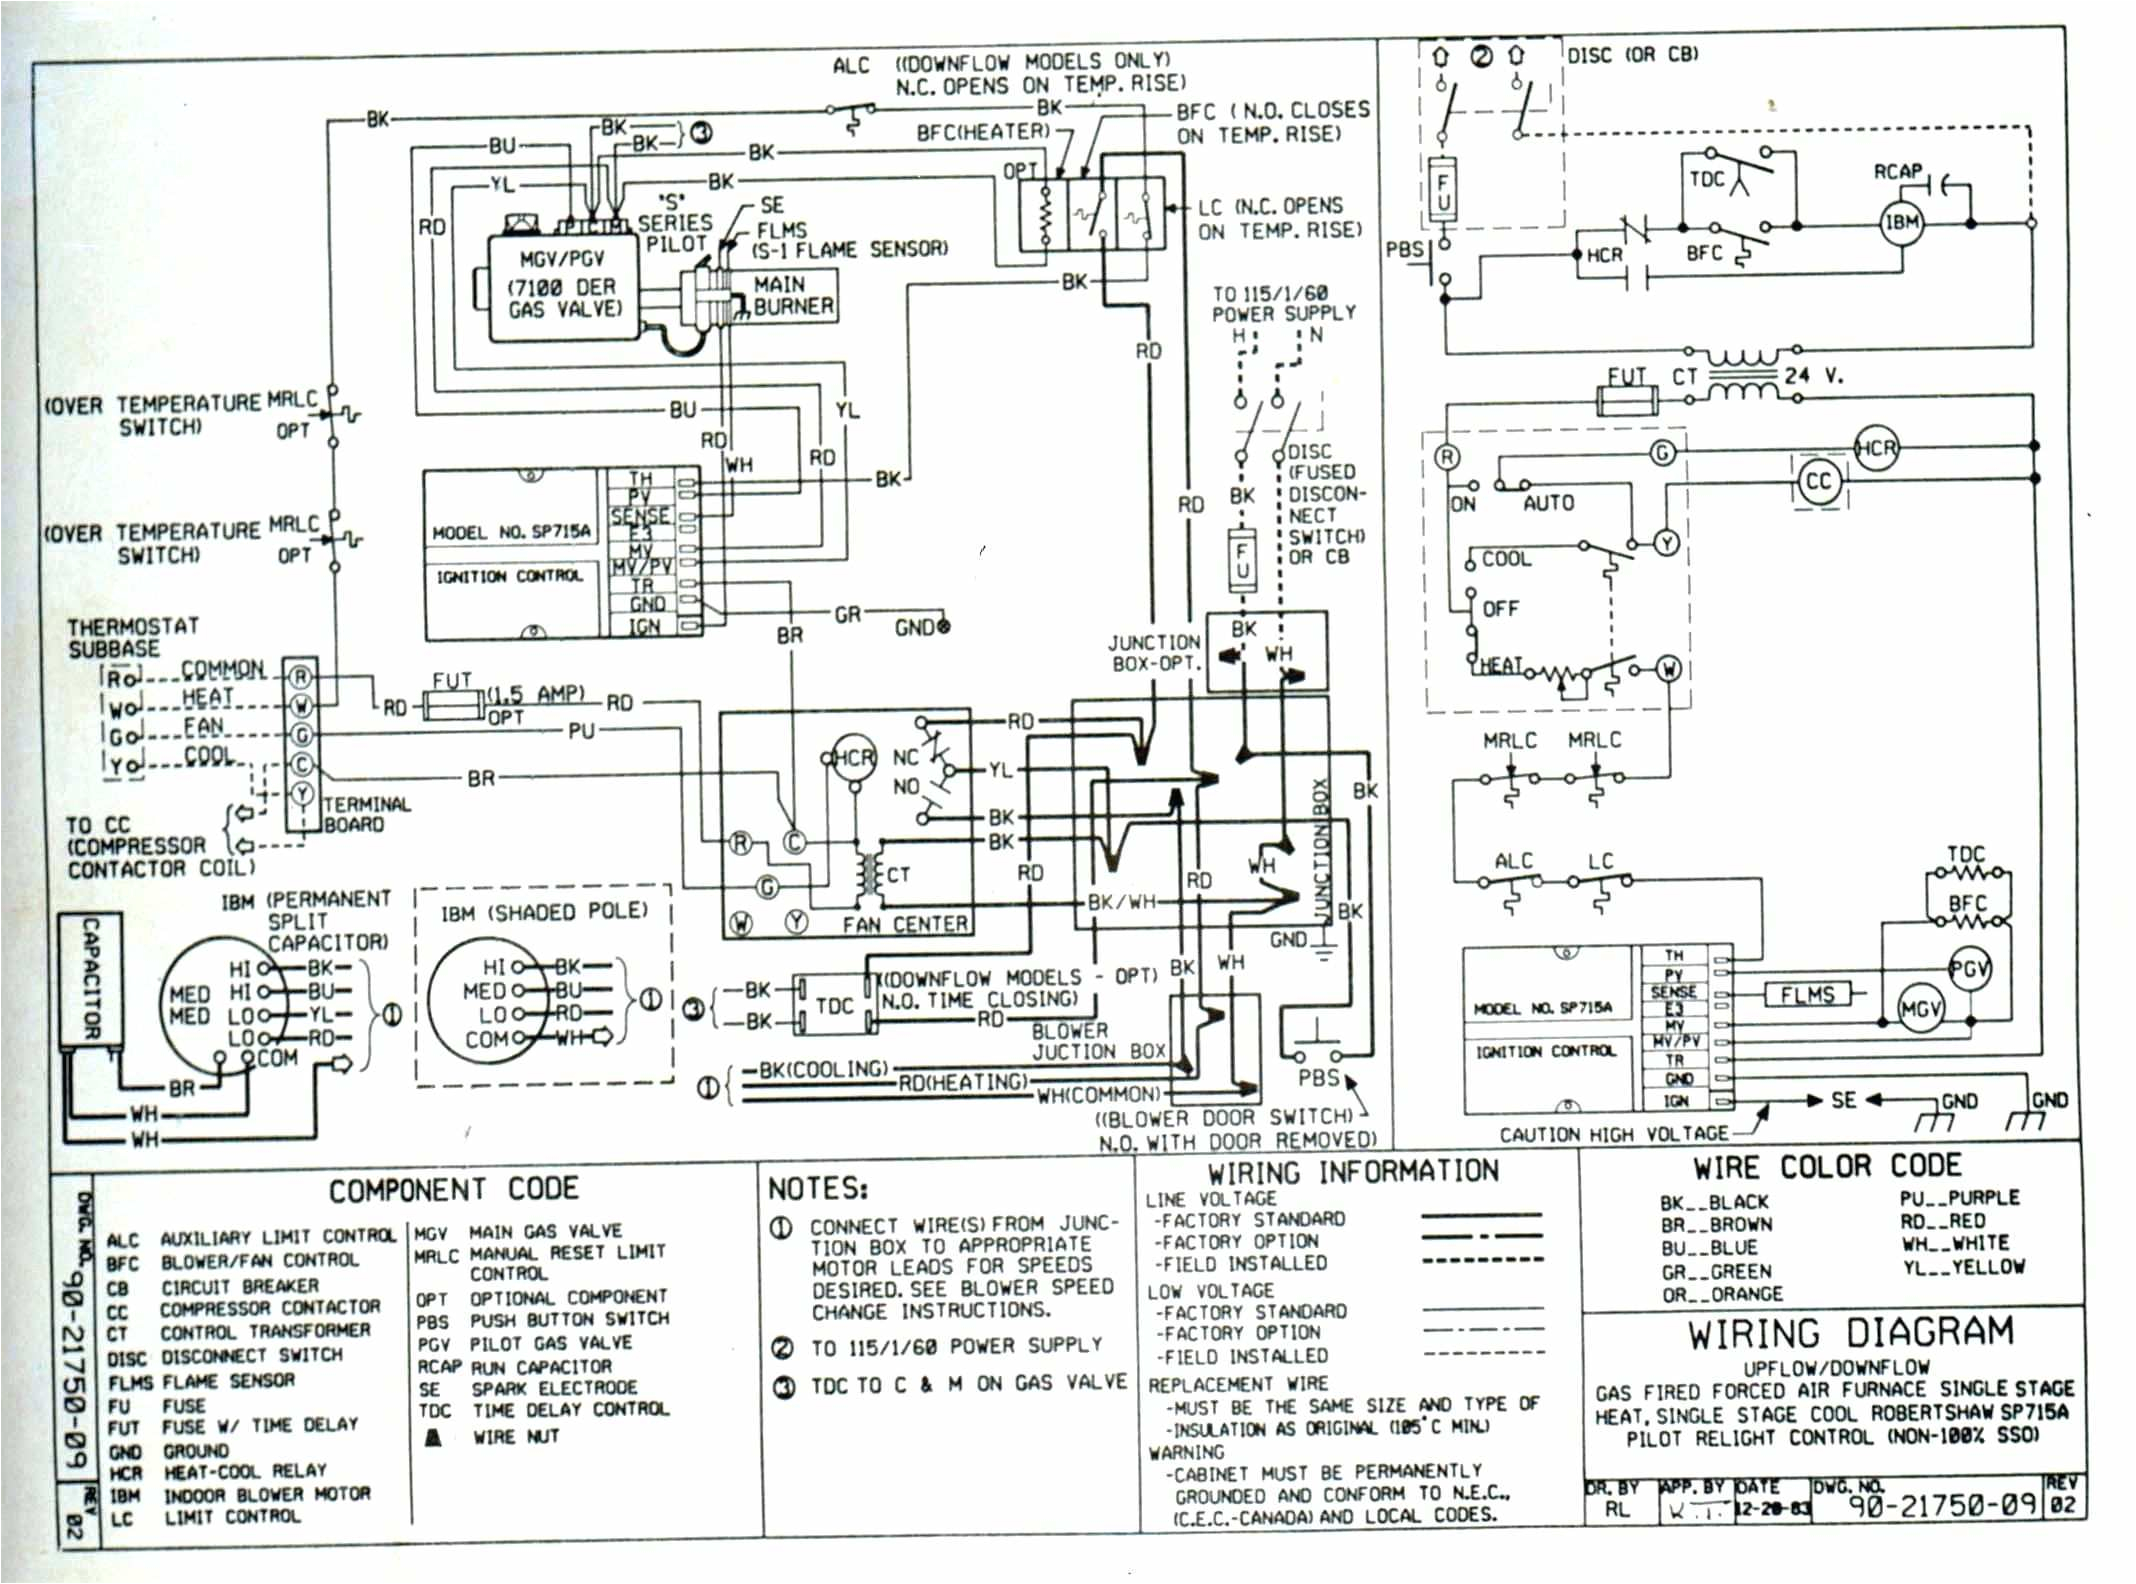 copeland wiring relay diagram wiring diagram review copeland potential relay wiring diagram run capacitor for hermetic